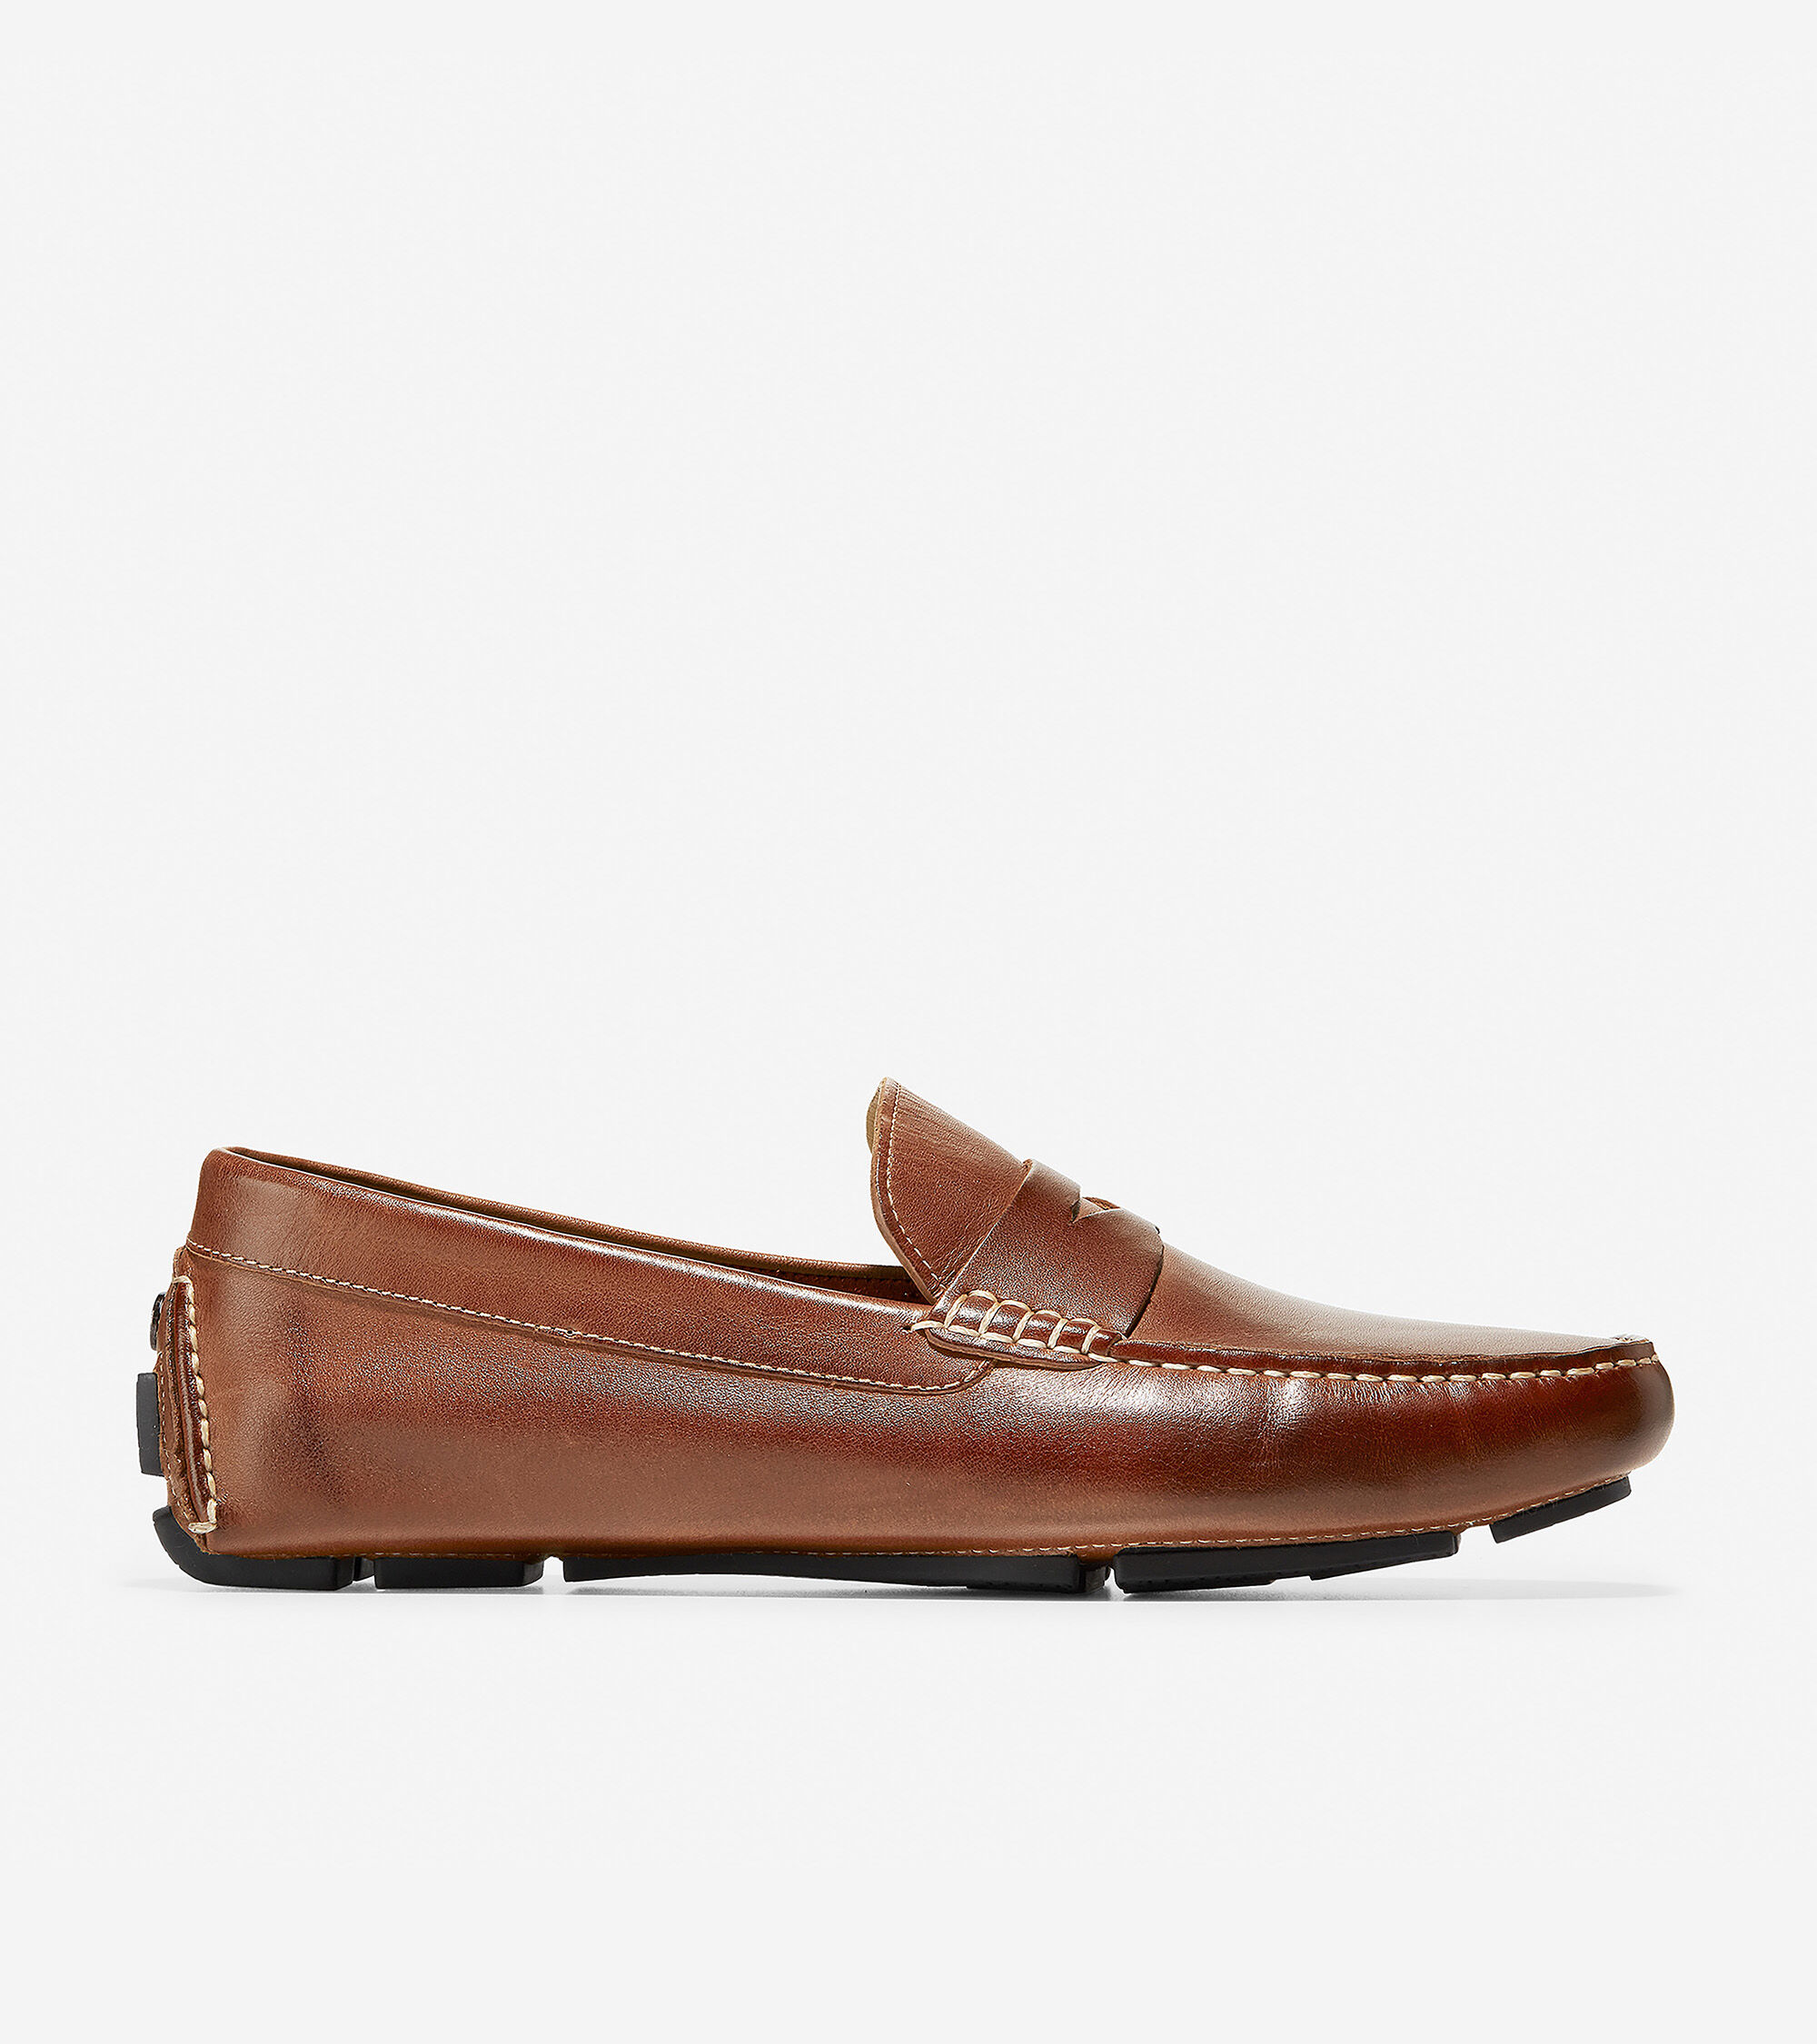 e6b07d29f Howland Penny in Saddle Tan   Mens Shoes